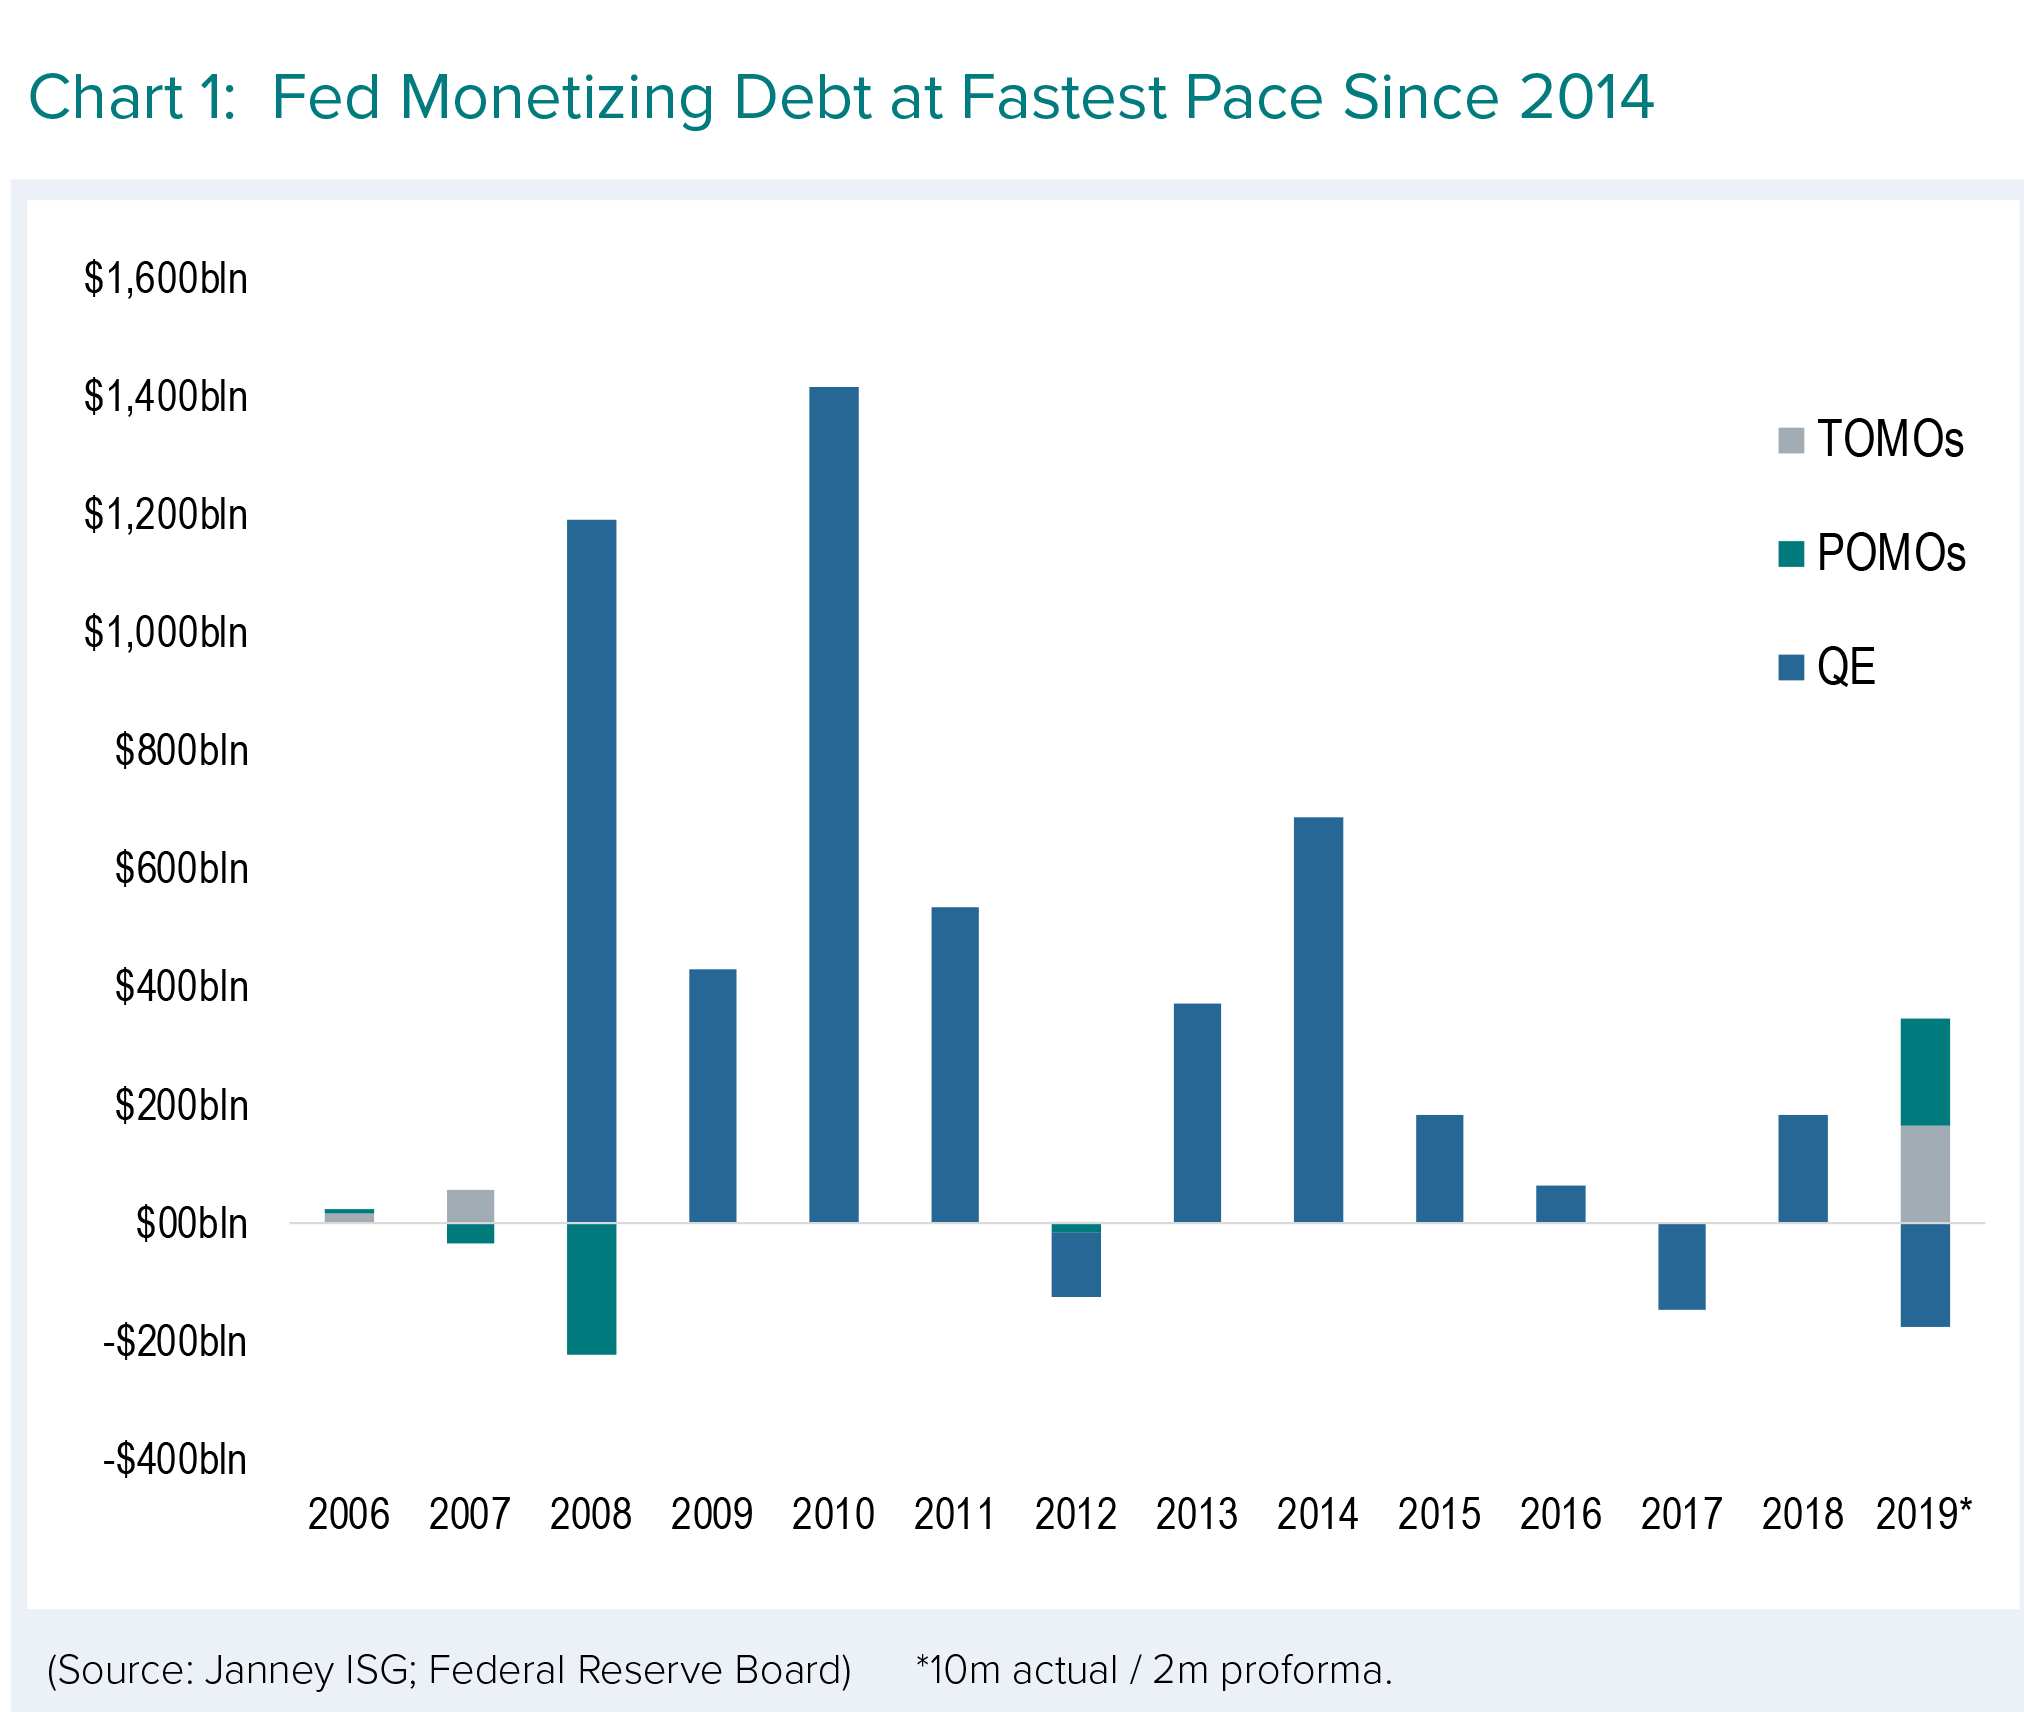 Fed monetizing debt at fastest pace since 2014